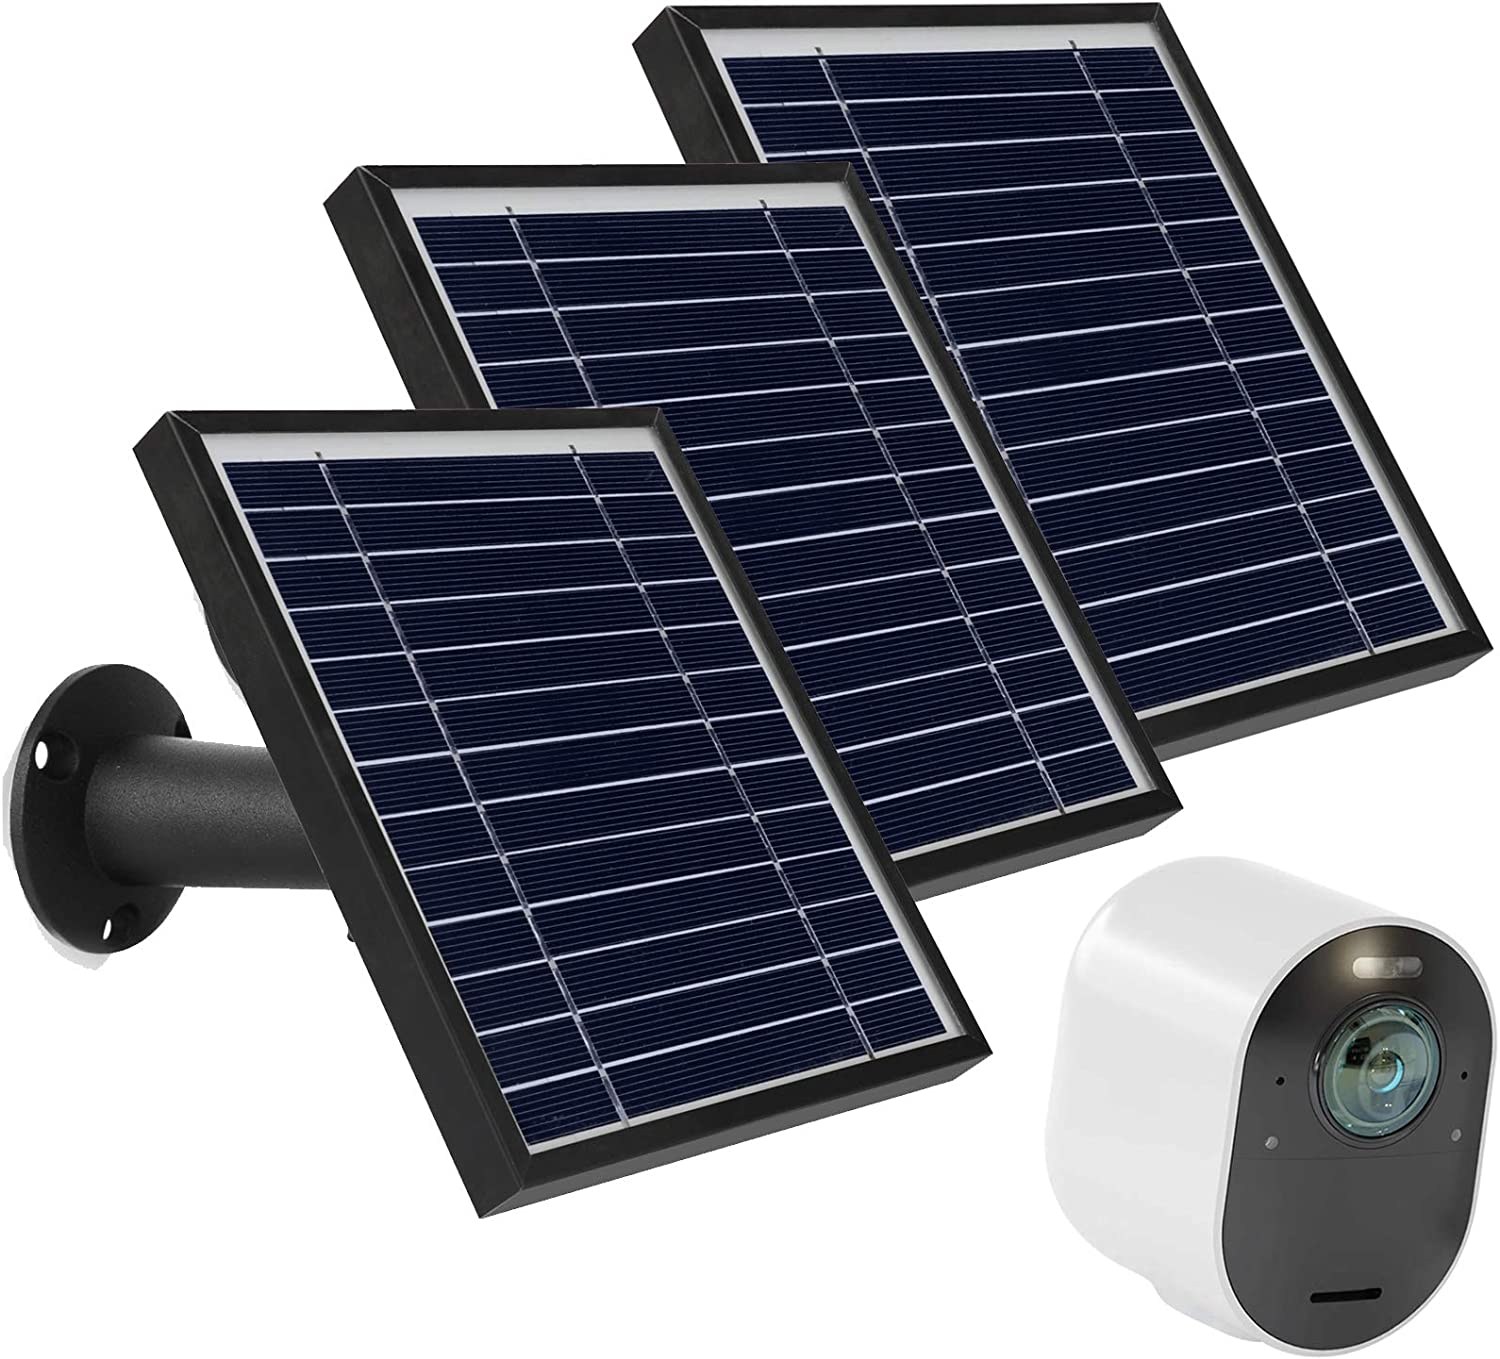 Uogw 3W Superior New arrival 6V Solar Panel Charge for 3 Ul Pro Arlo Ultra 4